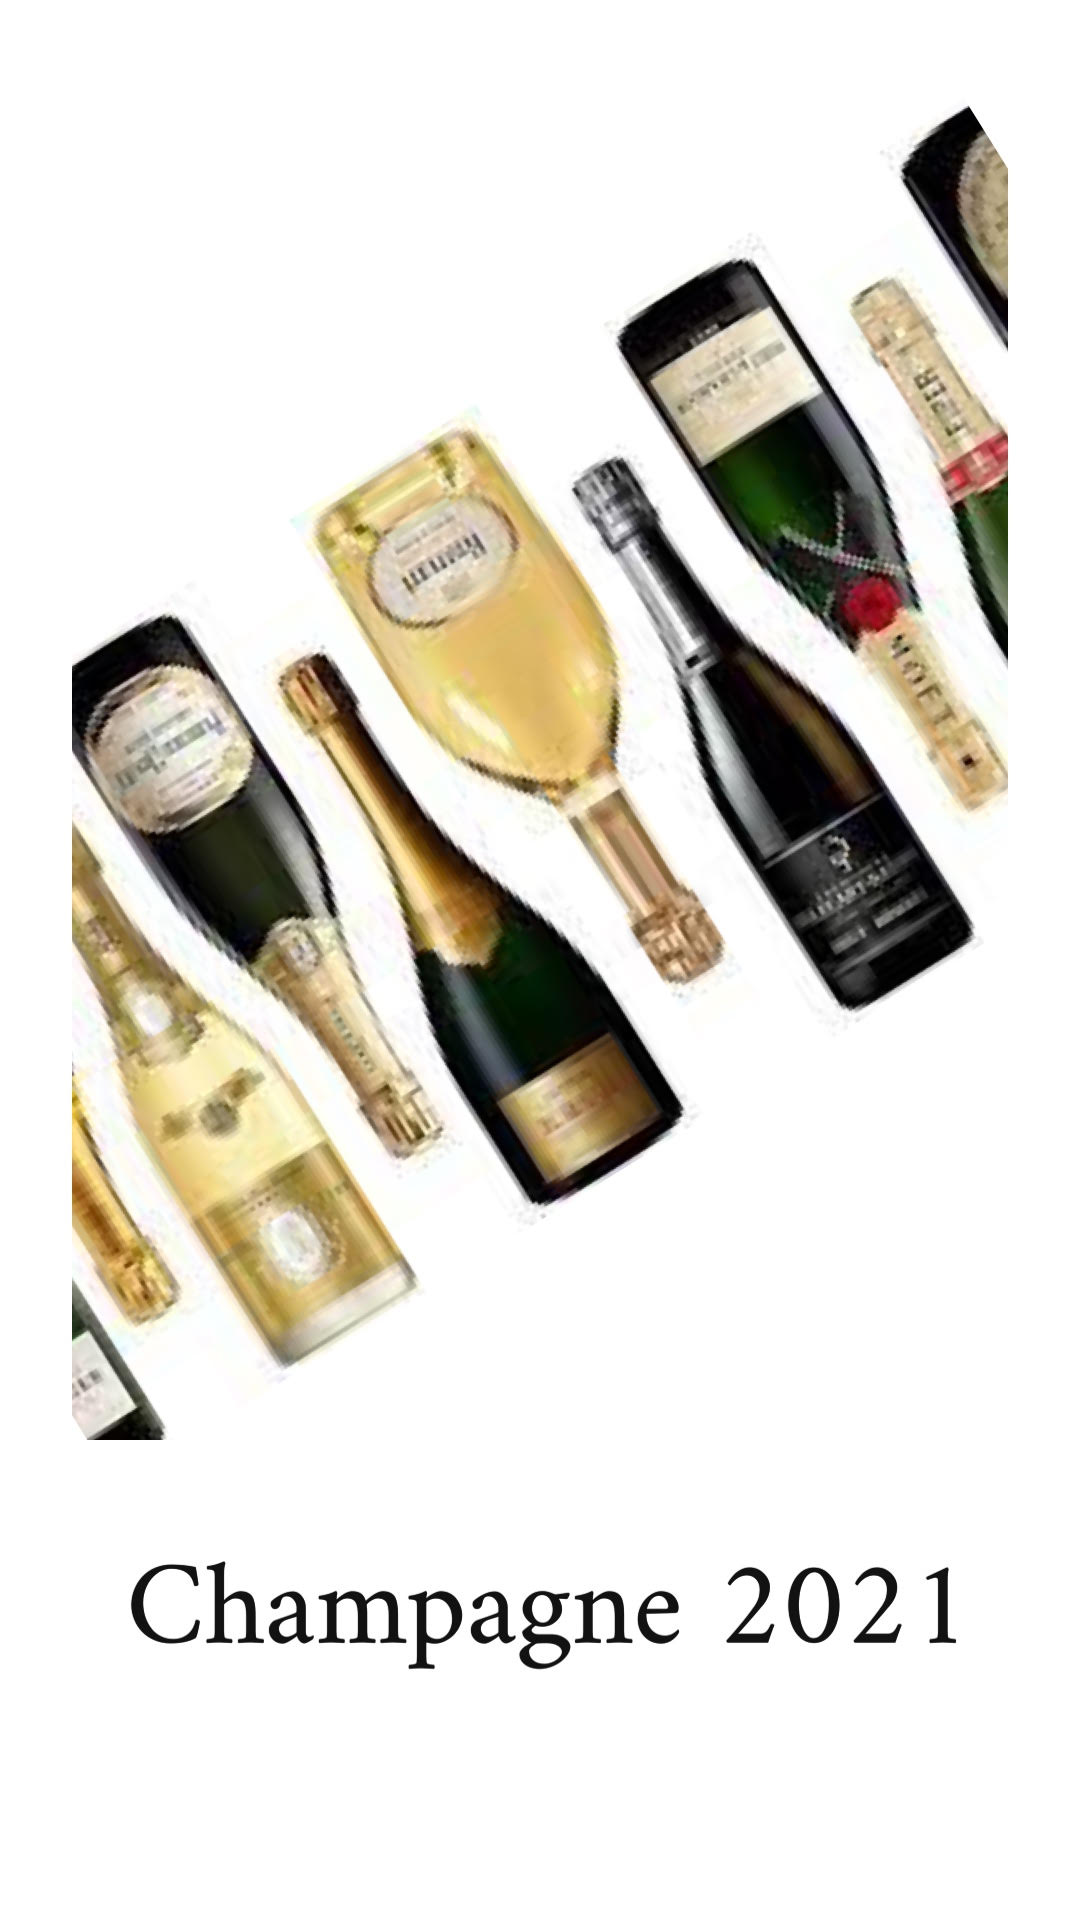 2021 Champagne Shipments are back to pre-Covid Levels